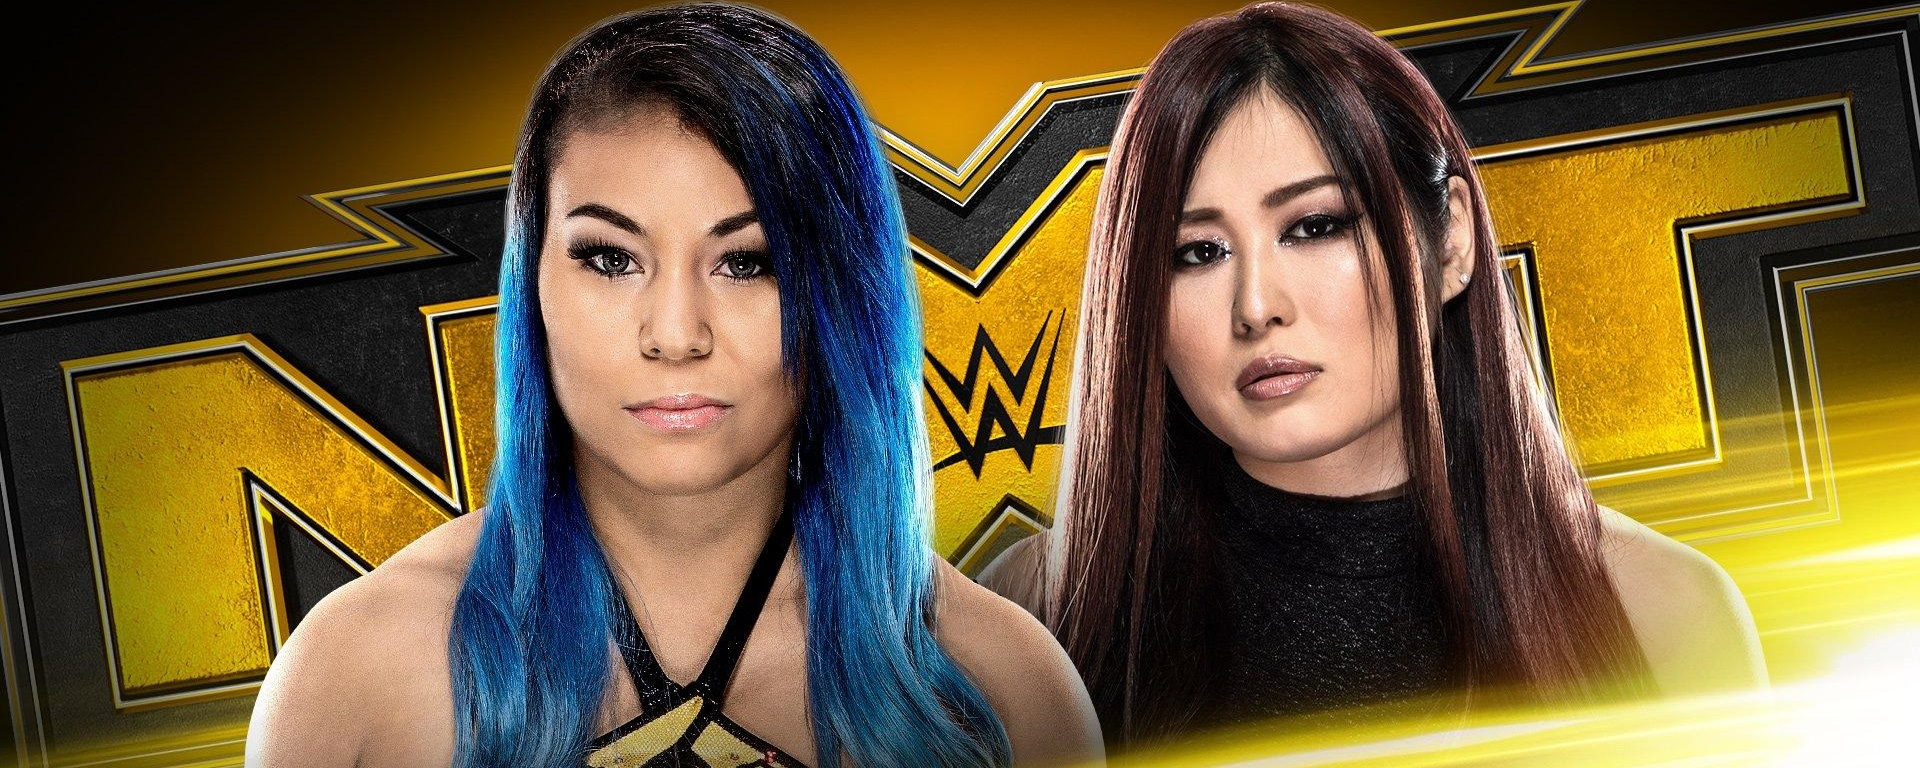 WWE NXT 11/13/19 Preview: Io Shirai vs. Mia Yim in a Ladder Match